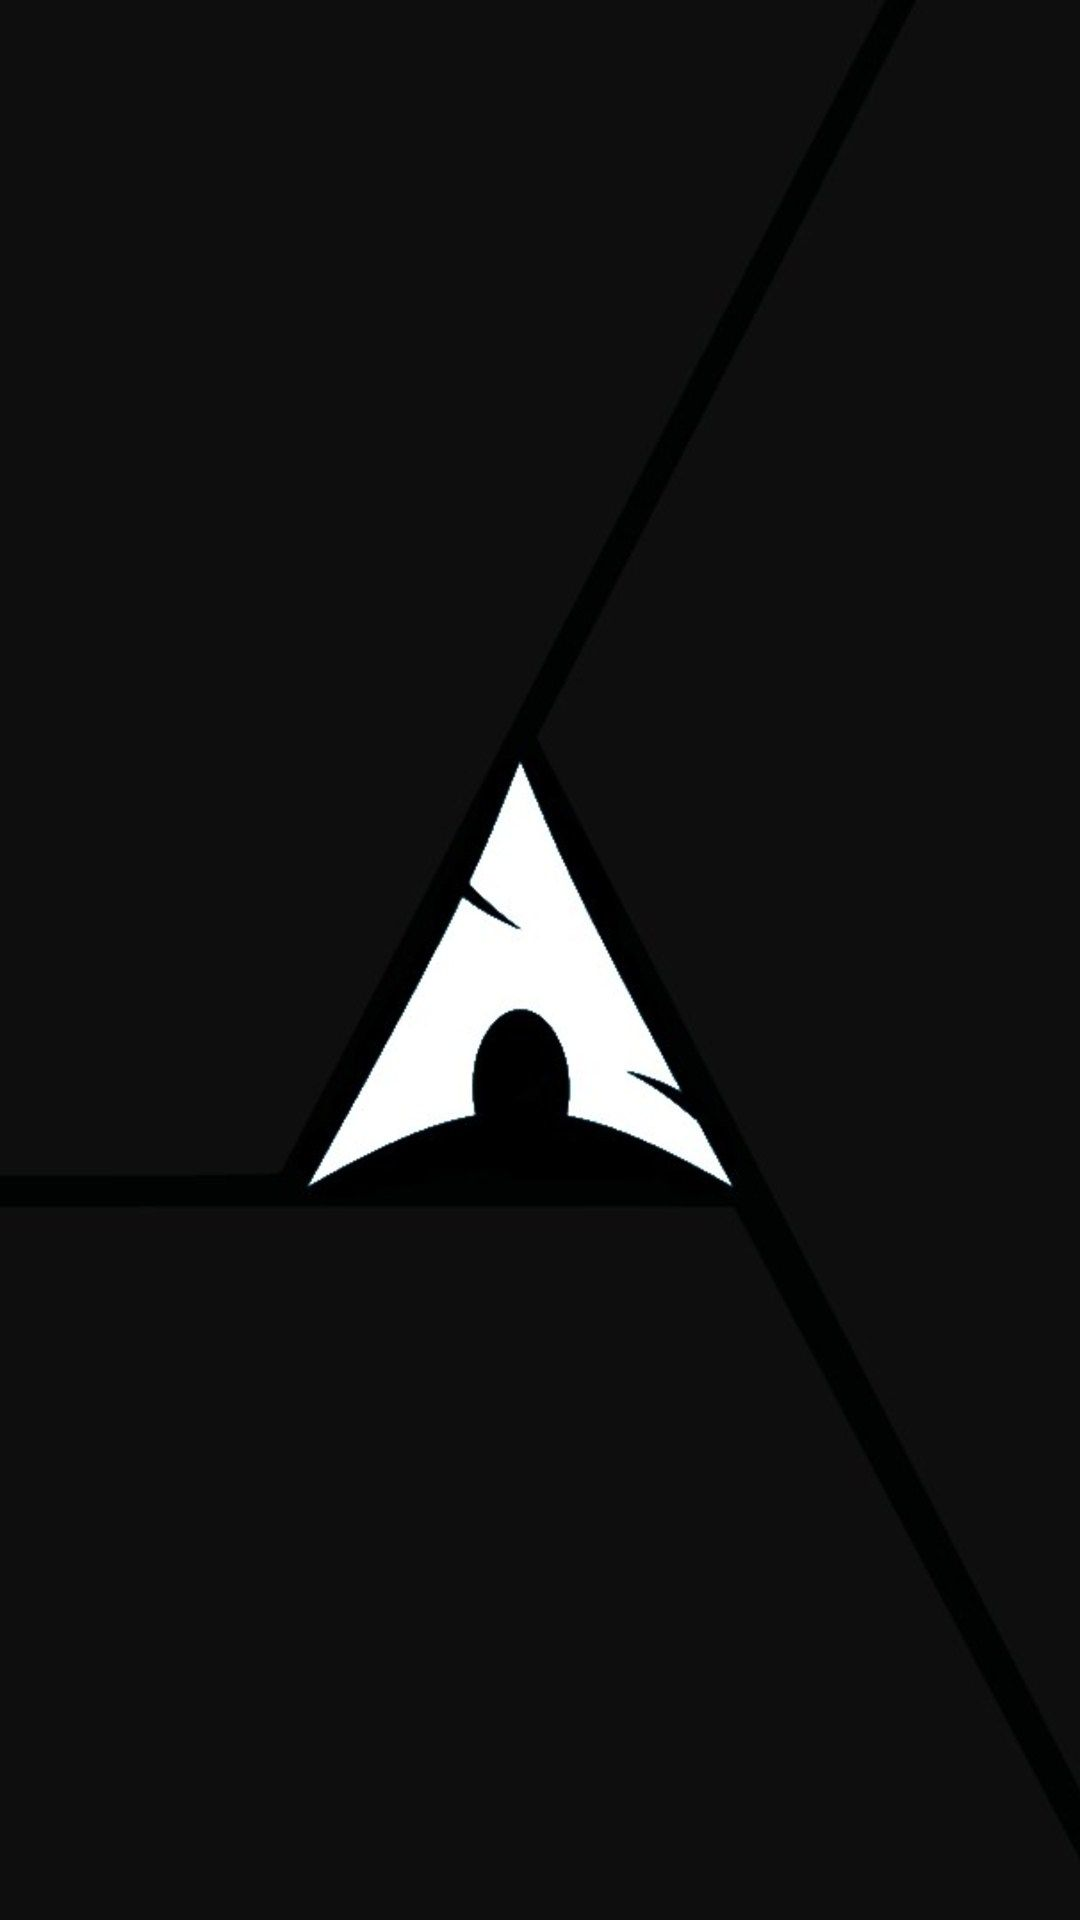 Arch Linux HiDPI wallpapers